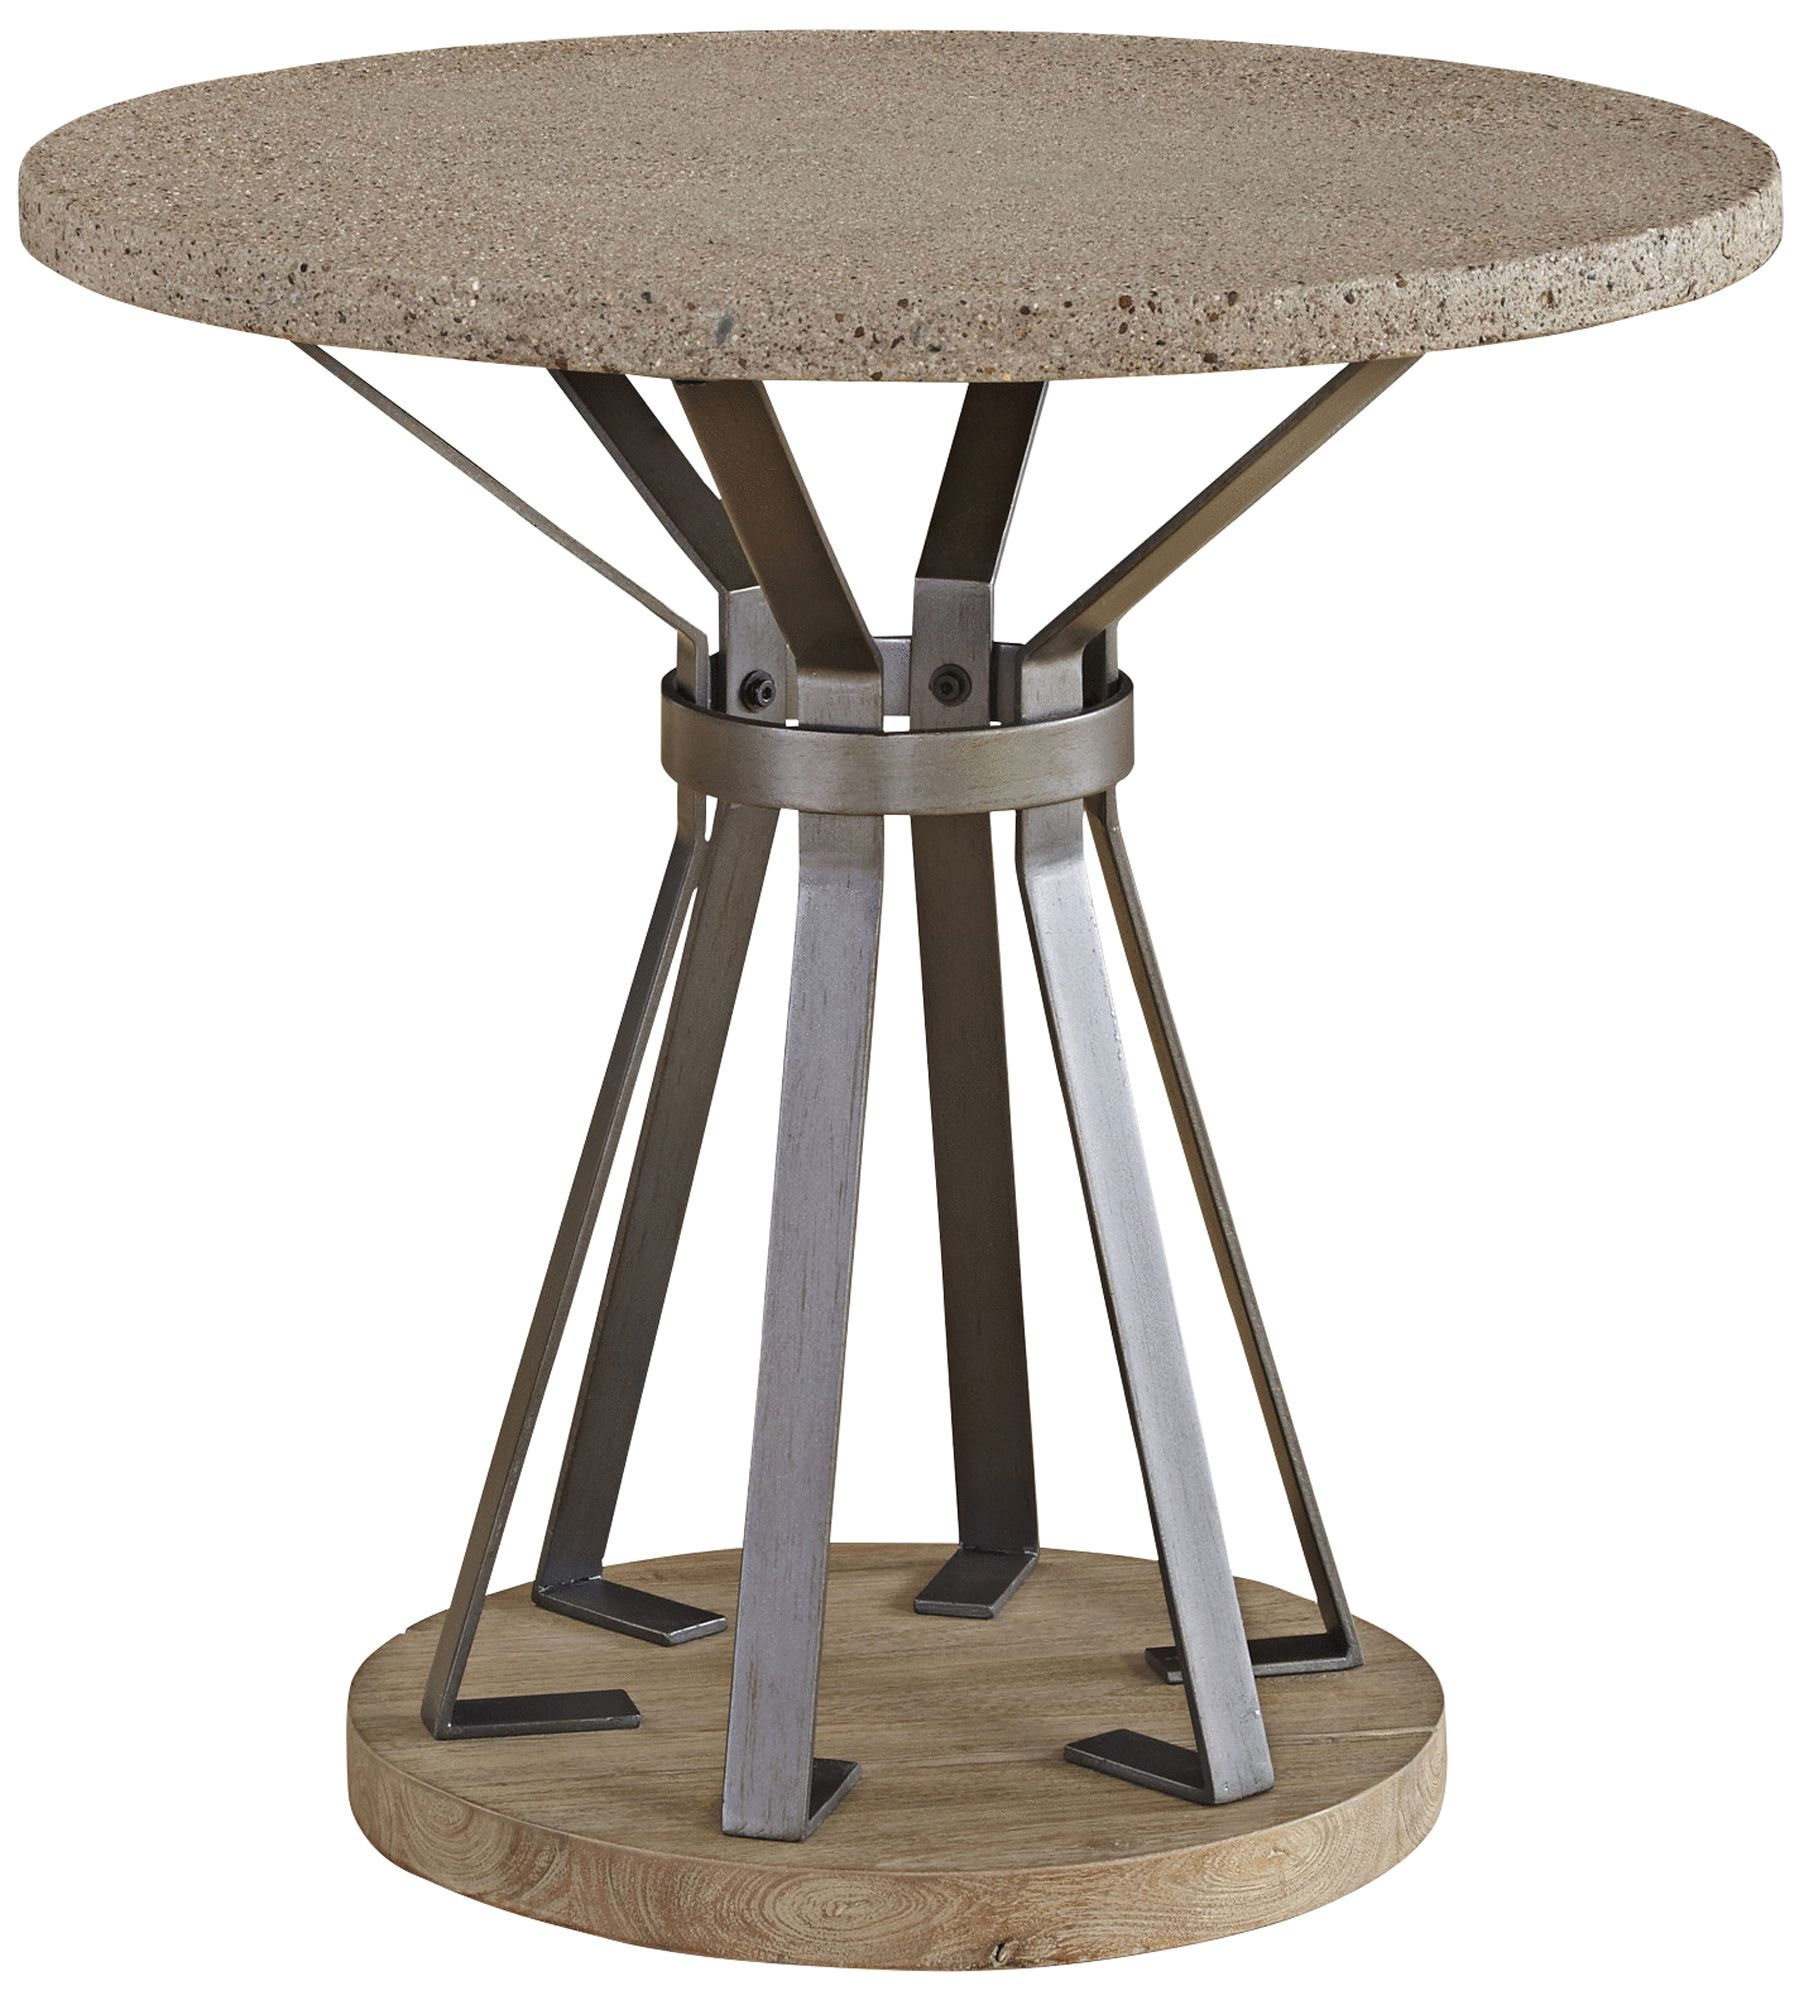 Outdoor Tables - Patio Tables